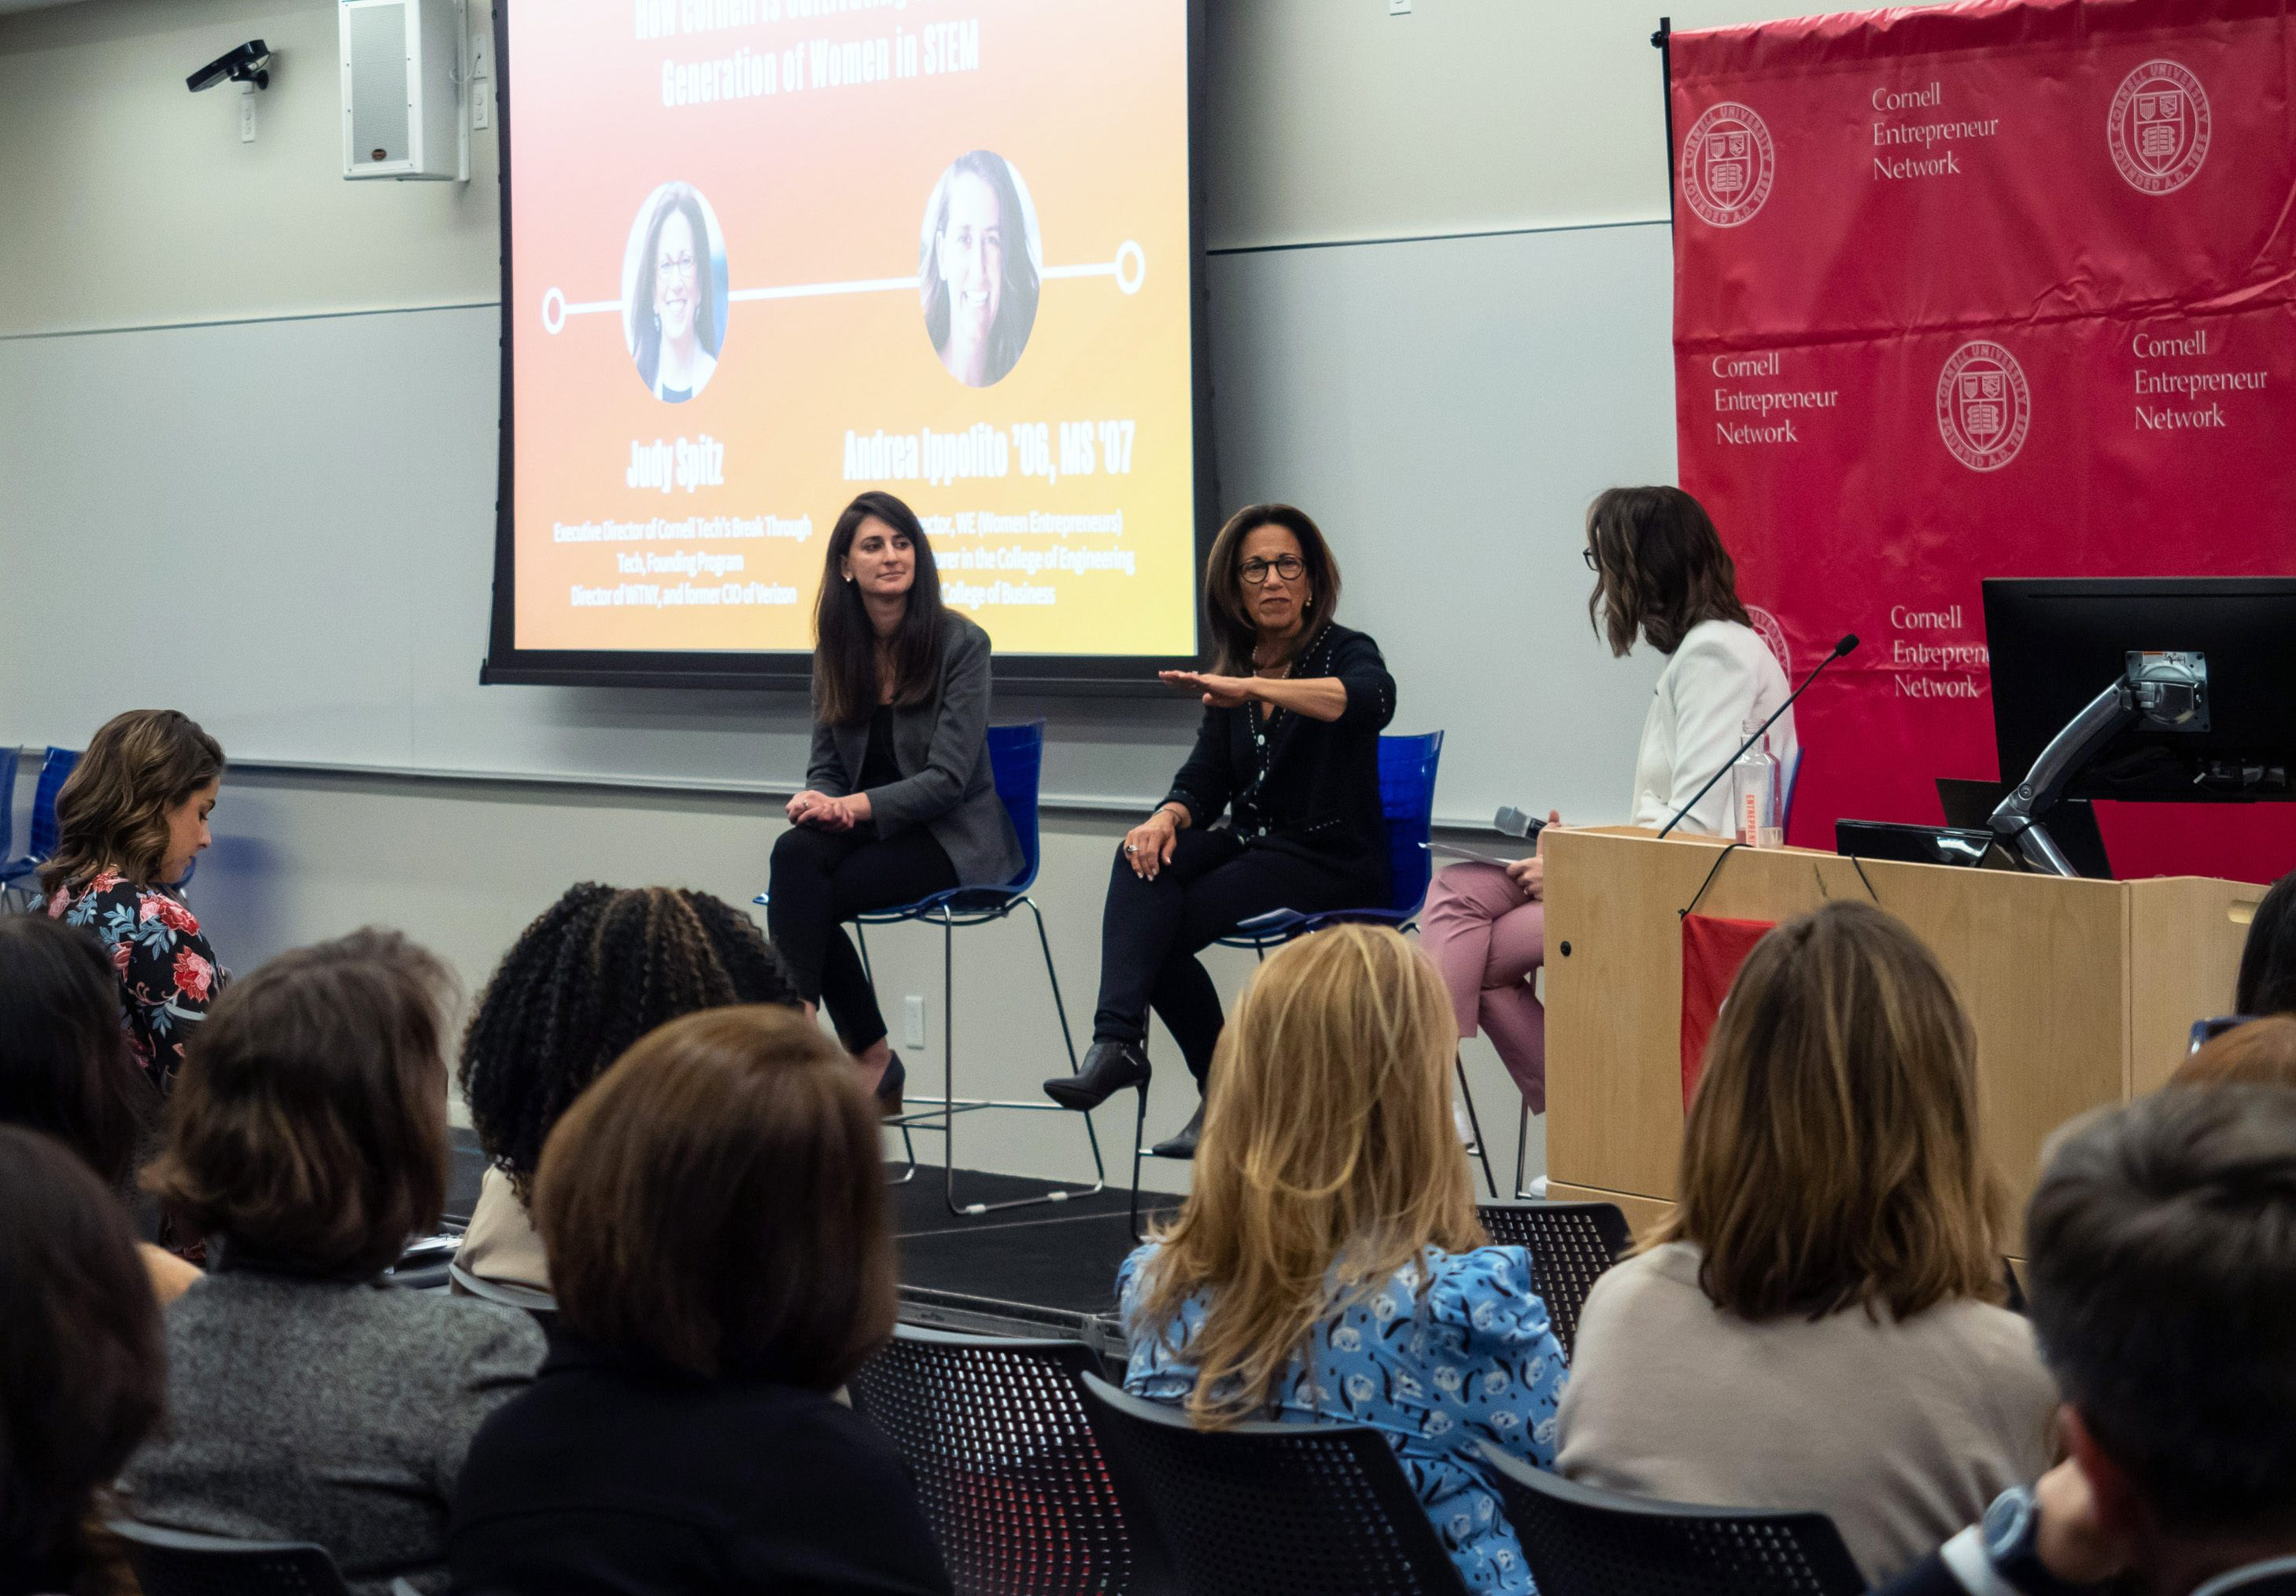 Andrea Ippolito '06, MEng '07, program director, W.E. (Women Entrepreneurs) Cornell and Judy Spitz, executive director of Cornell Tech's Break Through Tech, shared how Cornell is cultivating the next generation of entrepreneurs.